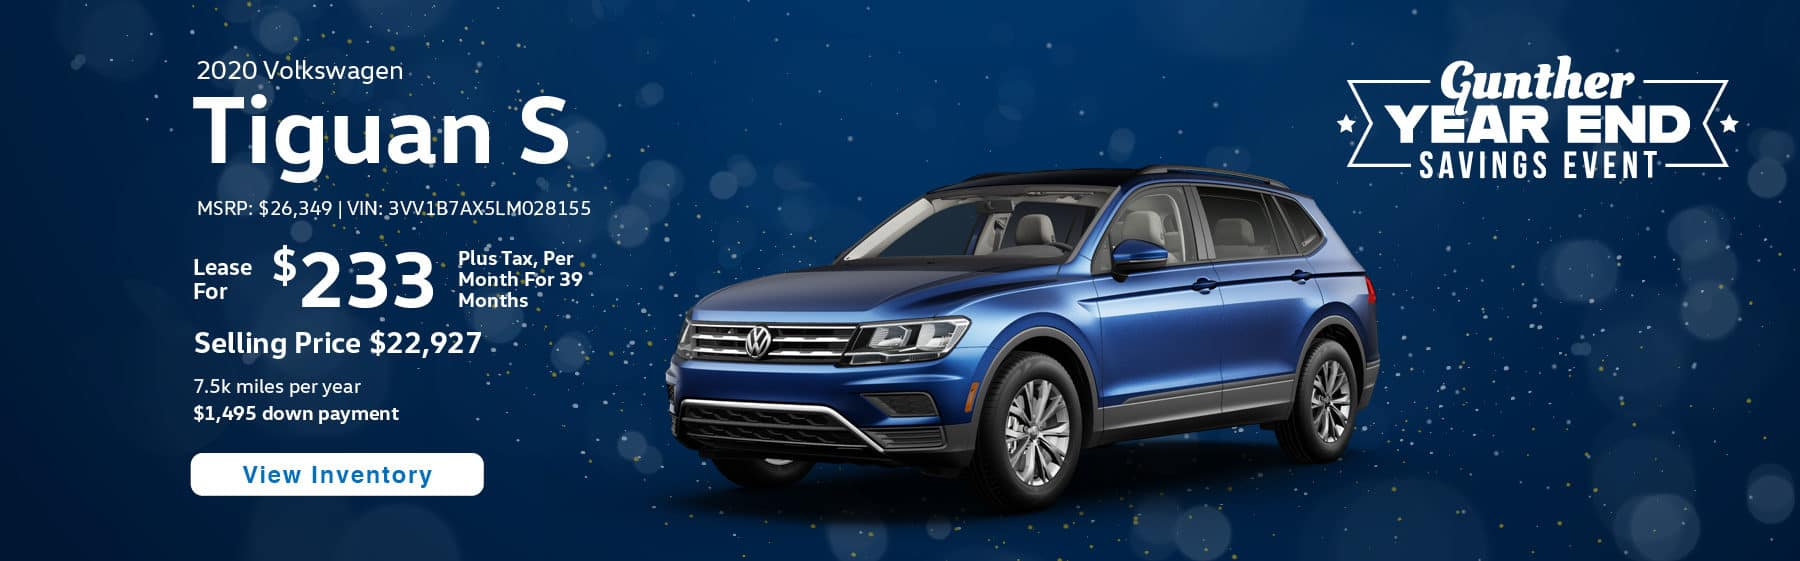 Lease the 2019 Tiguan S for $233 per month, plus tax for 39 months.